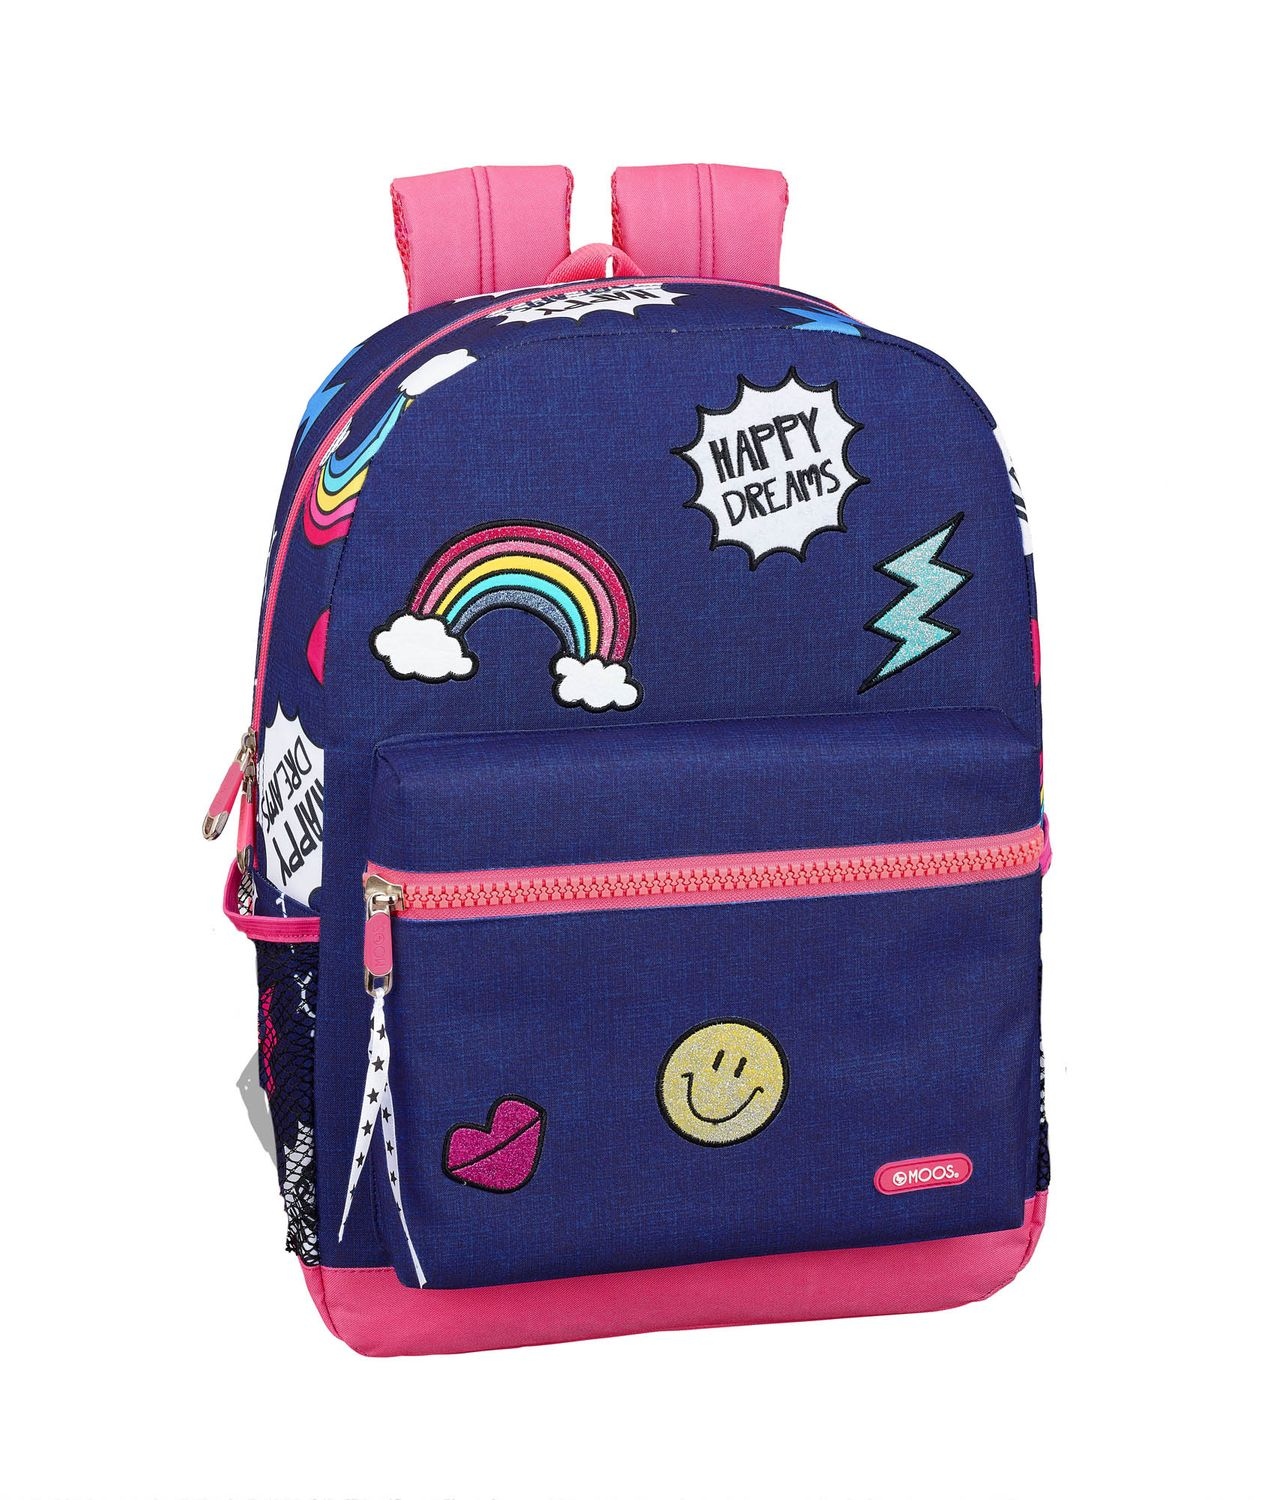 MOOS Backpack DREAMS 43cm – image 1